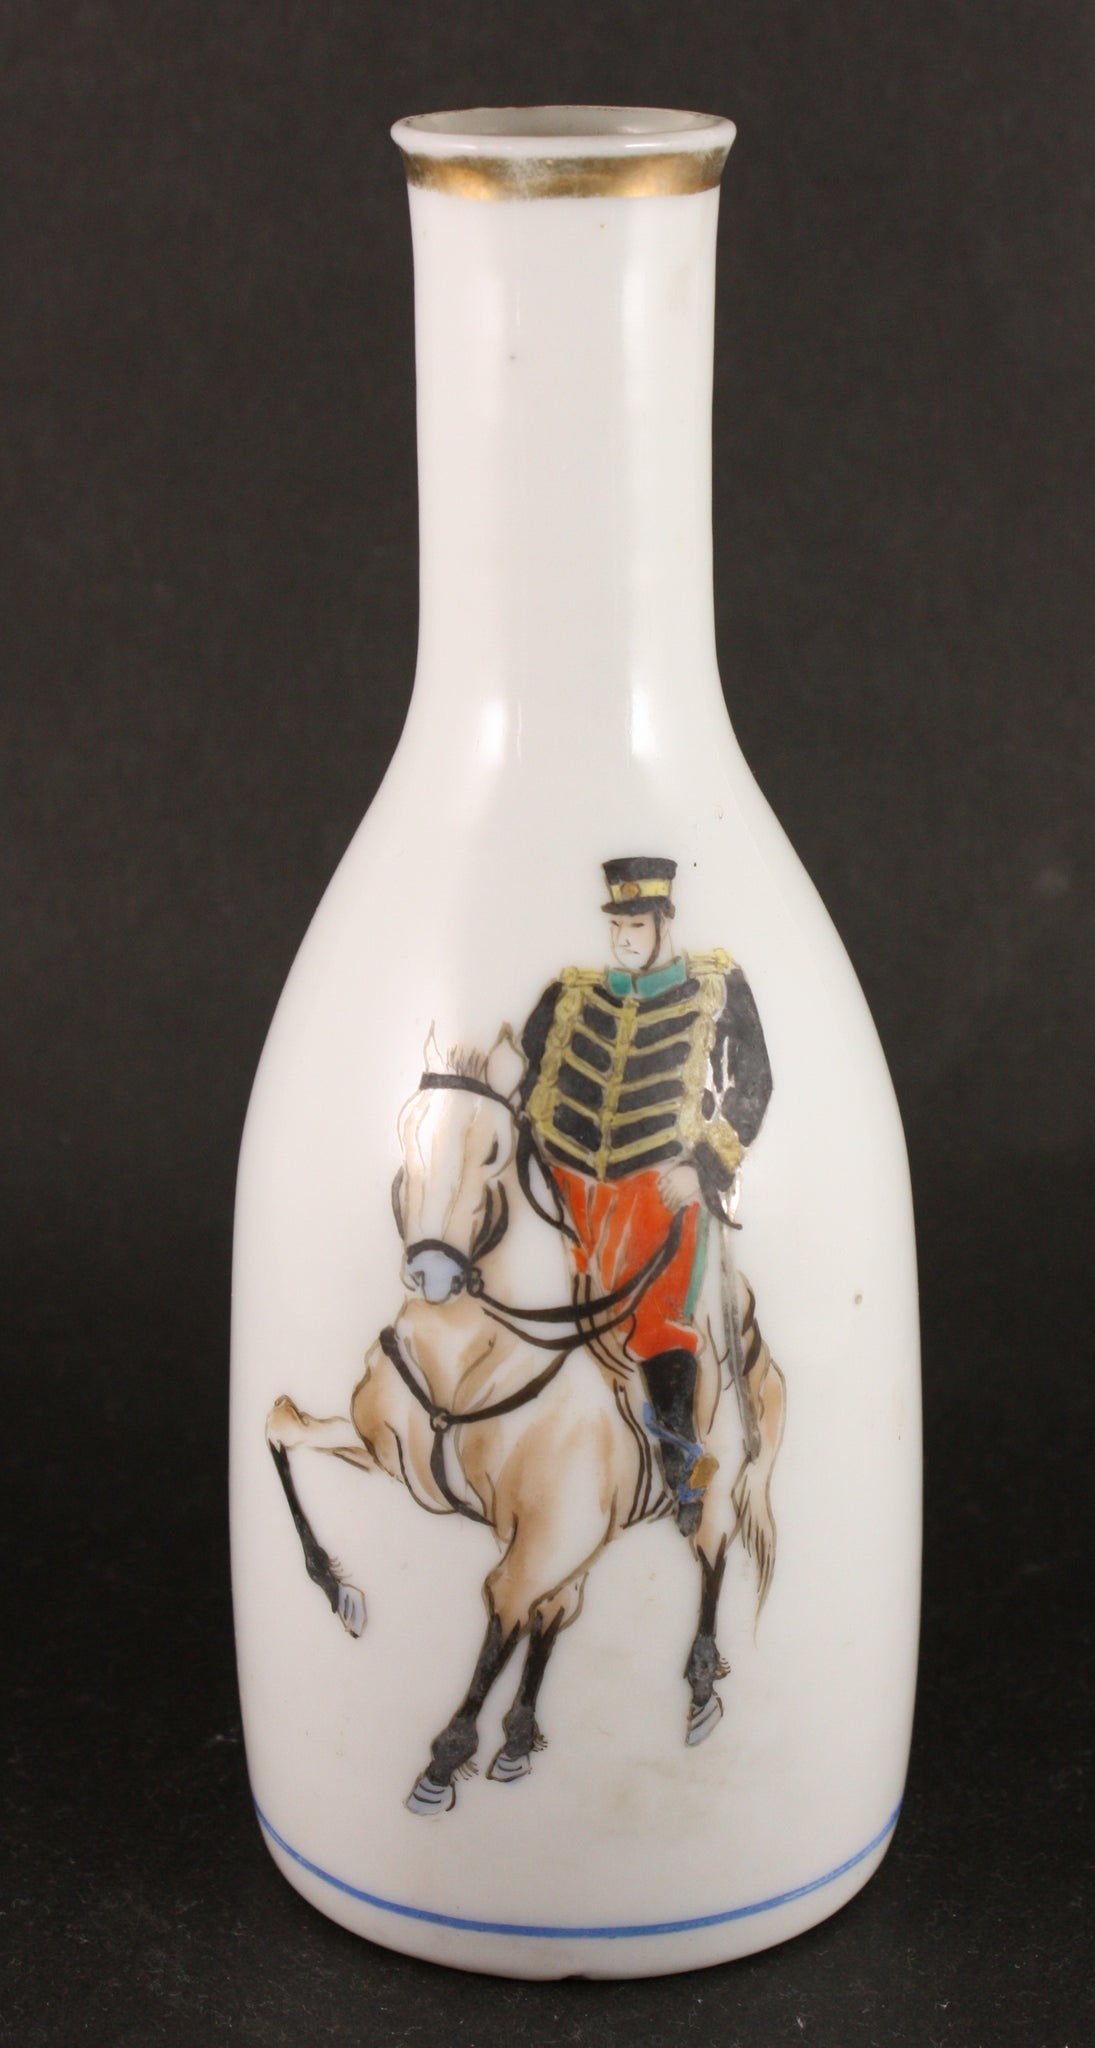 Very Rare Antique Japanese Military Meiji Era Hand Painted Cavalry Soldier Army Sake Bottle